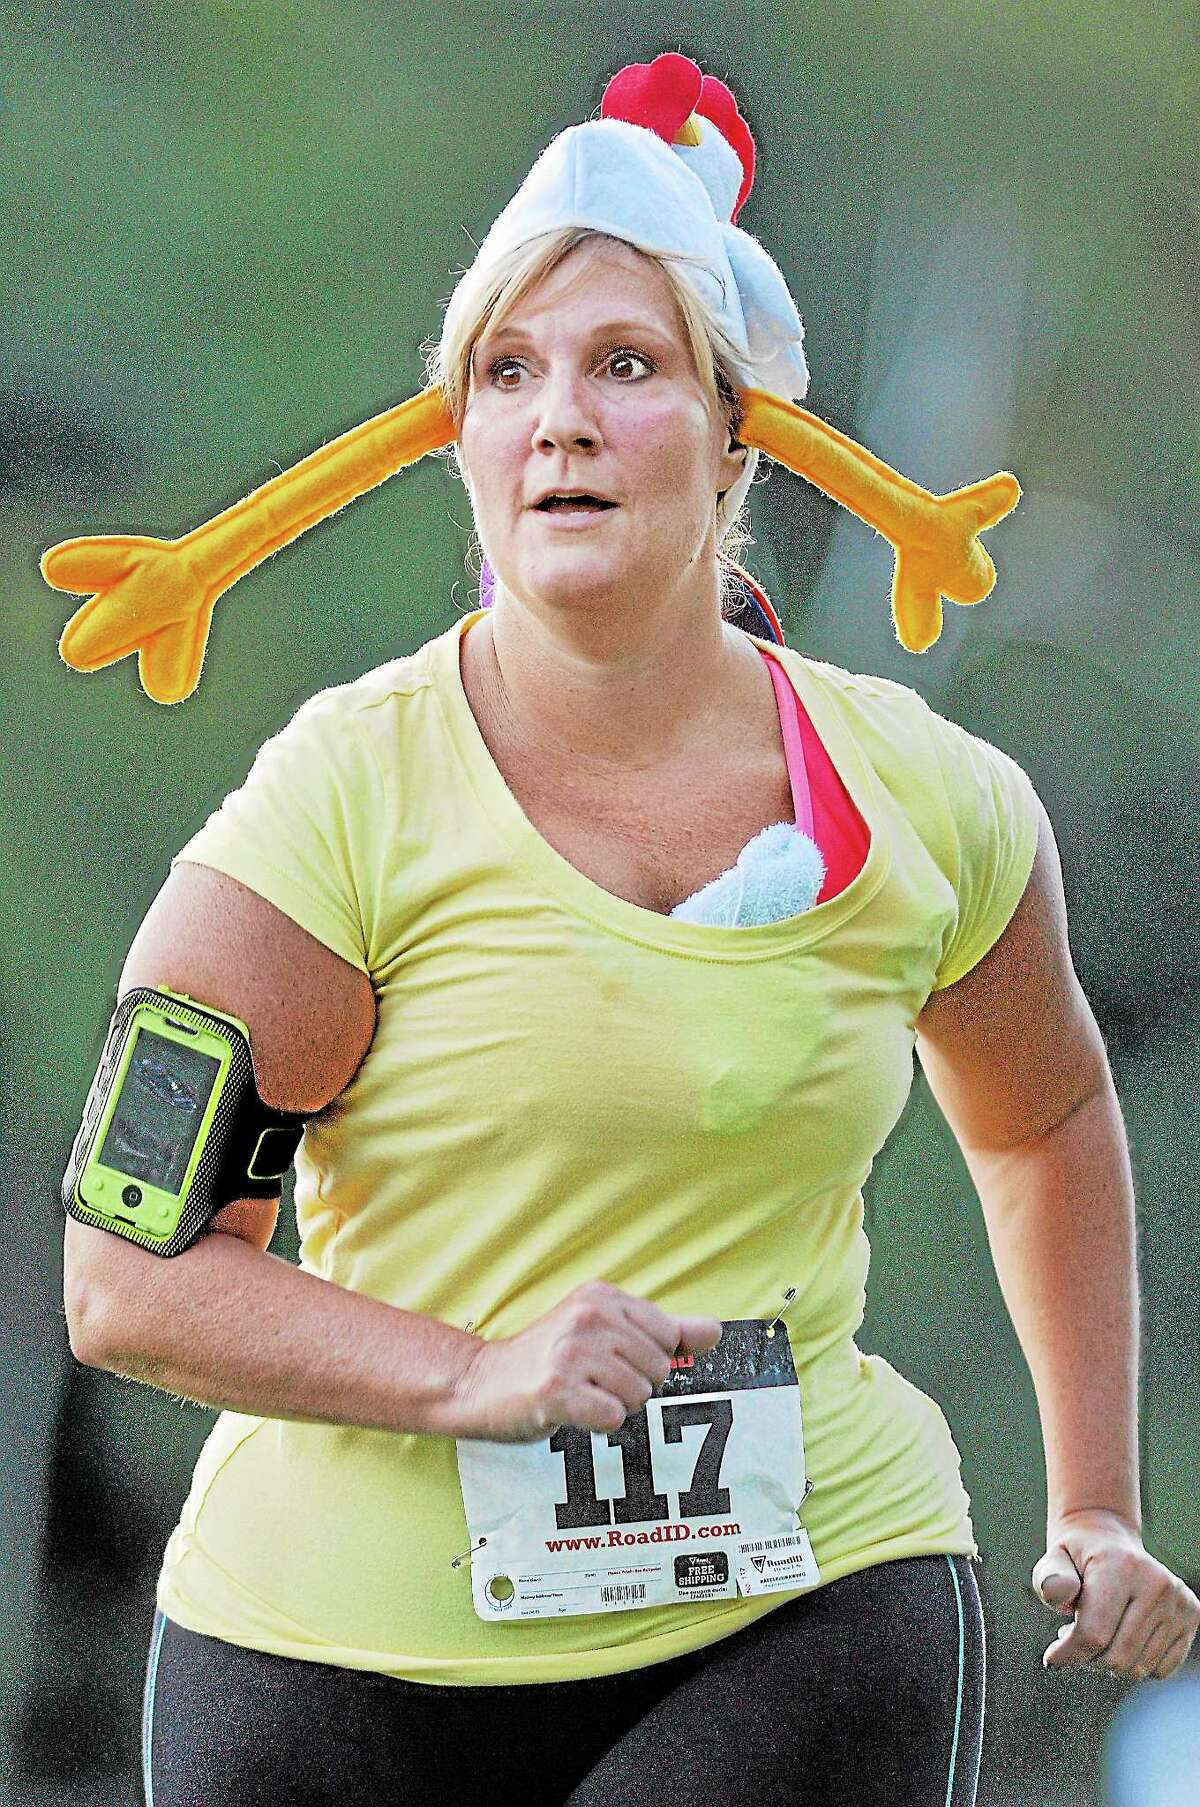 Middletown resident Lynn Ushchak completed the Oddfellows 5K Rubber Chicken Run in 42:31 Thursday evening at Mercy High School. Tom Holowka placed first in 17:18. Results can be viewed www.thelastminleracing.com. A gallery of images can be viewed at media.middletownpress.com. Catherine Avalone — The Middletown Press